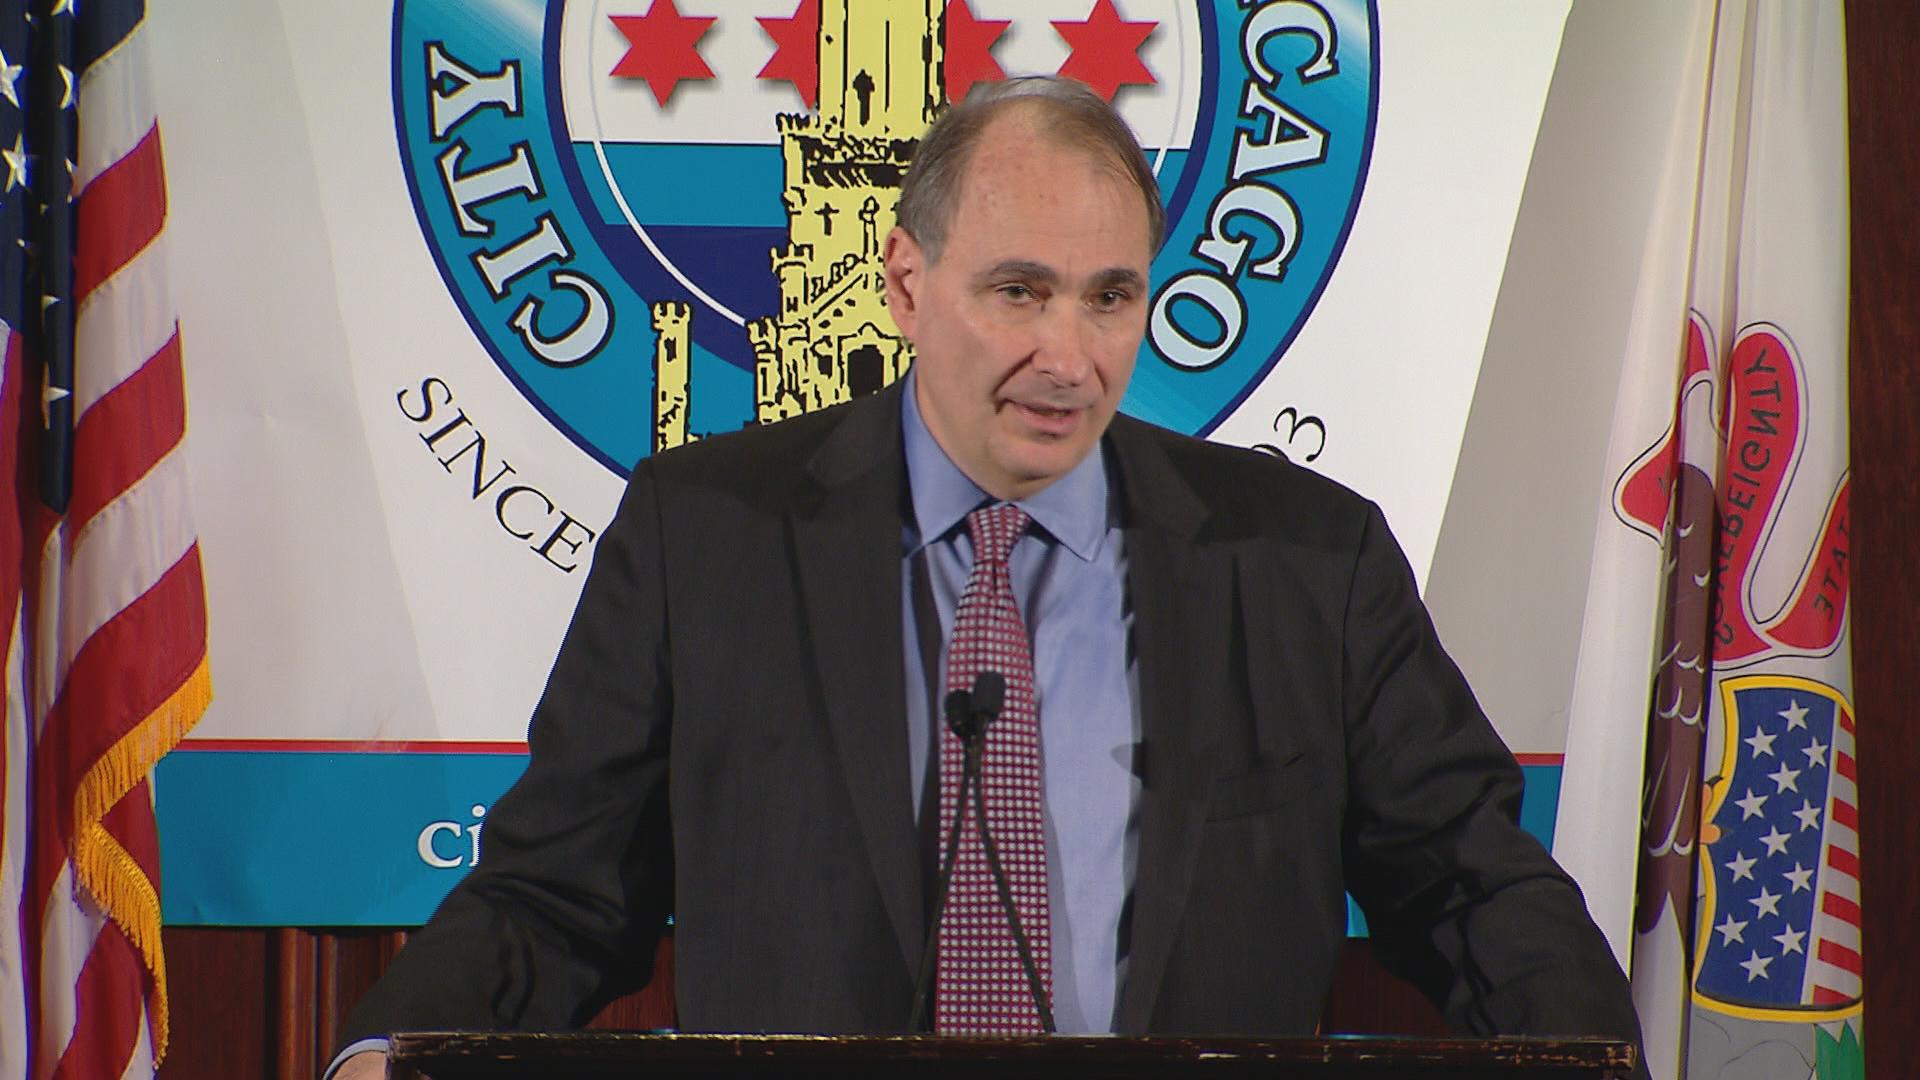 David Axelrod (Chicago Tonight)